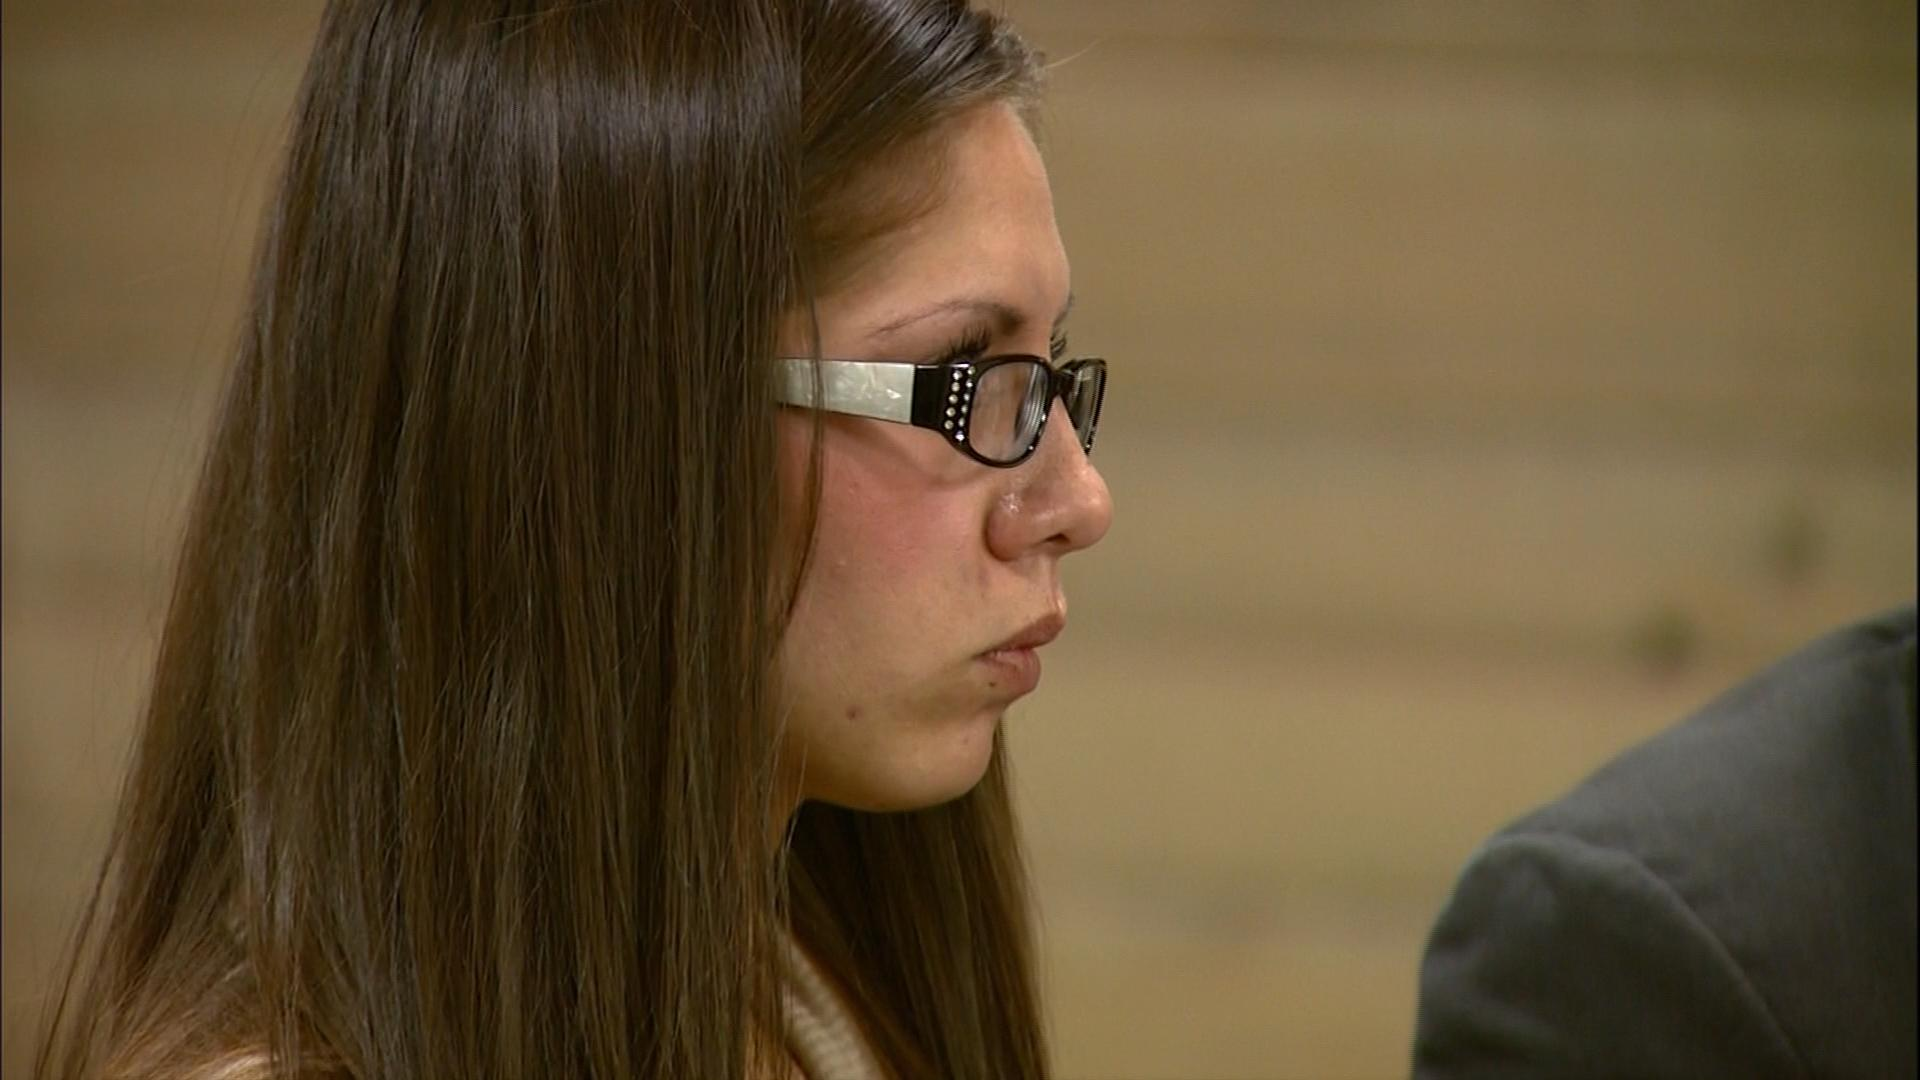 Shelby Figueroa in court in October of 2012 (credit: CBS)